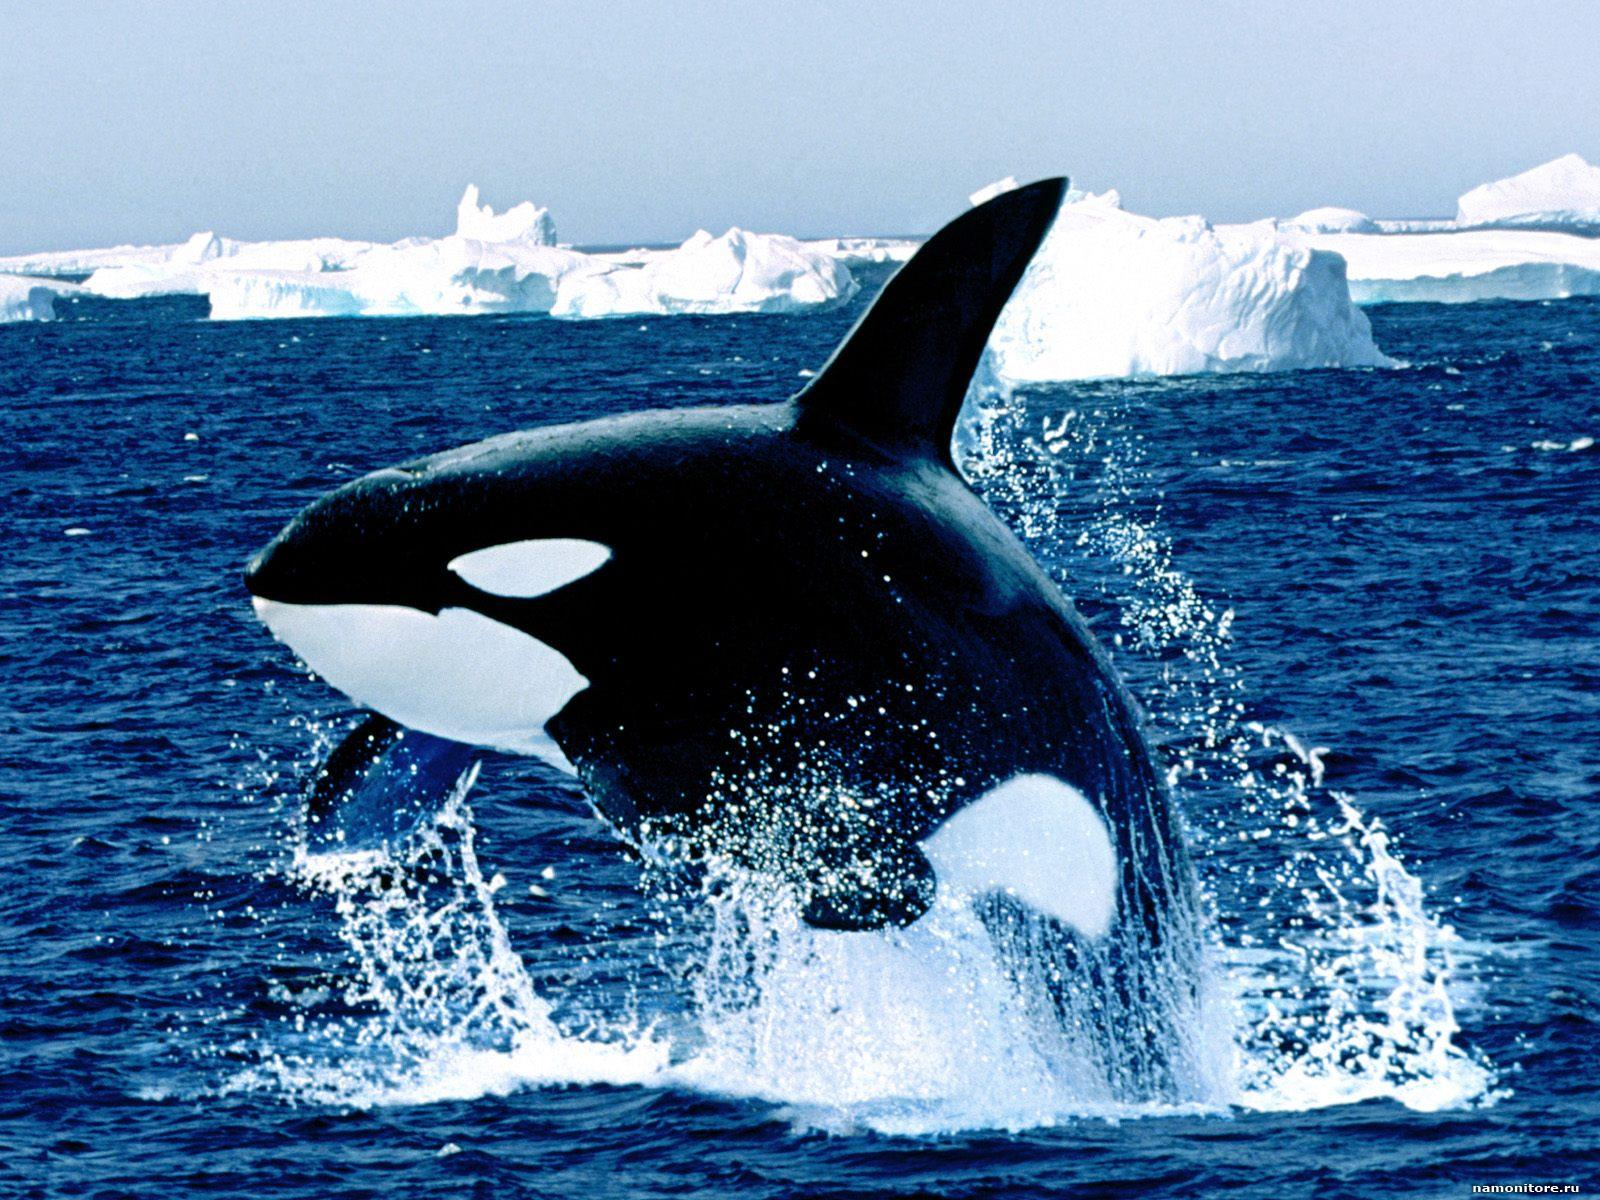 Killer Whale among ice floes, dark blue, sea, whales, whales 1600x1200